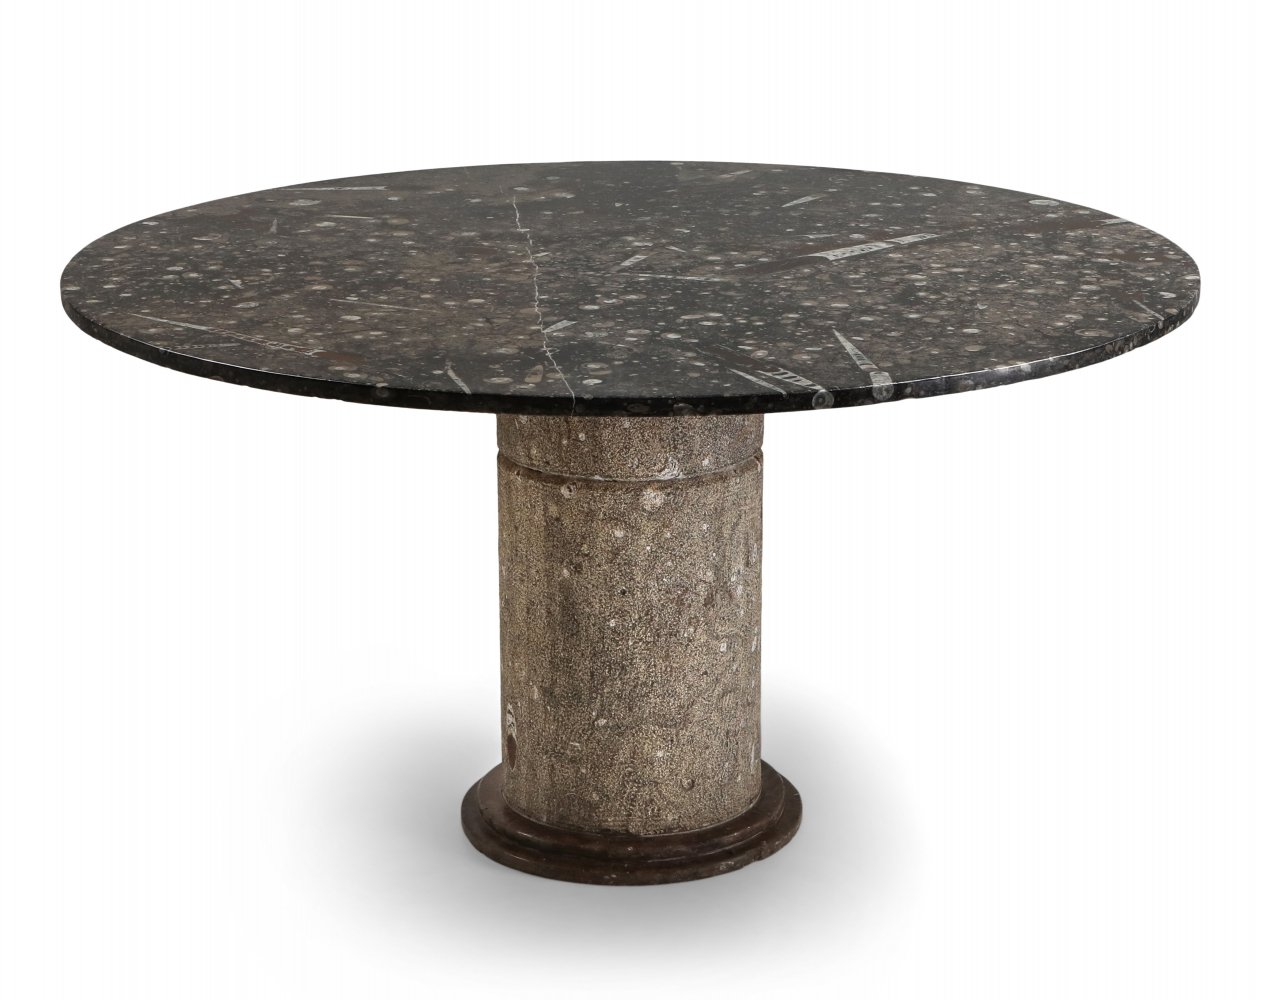 Fossil marble dining table, Marocco 1970s